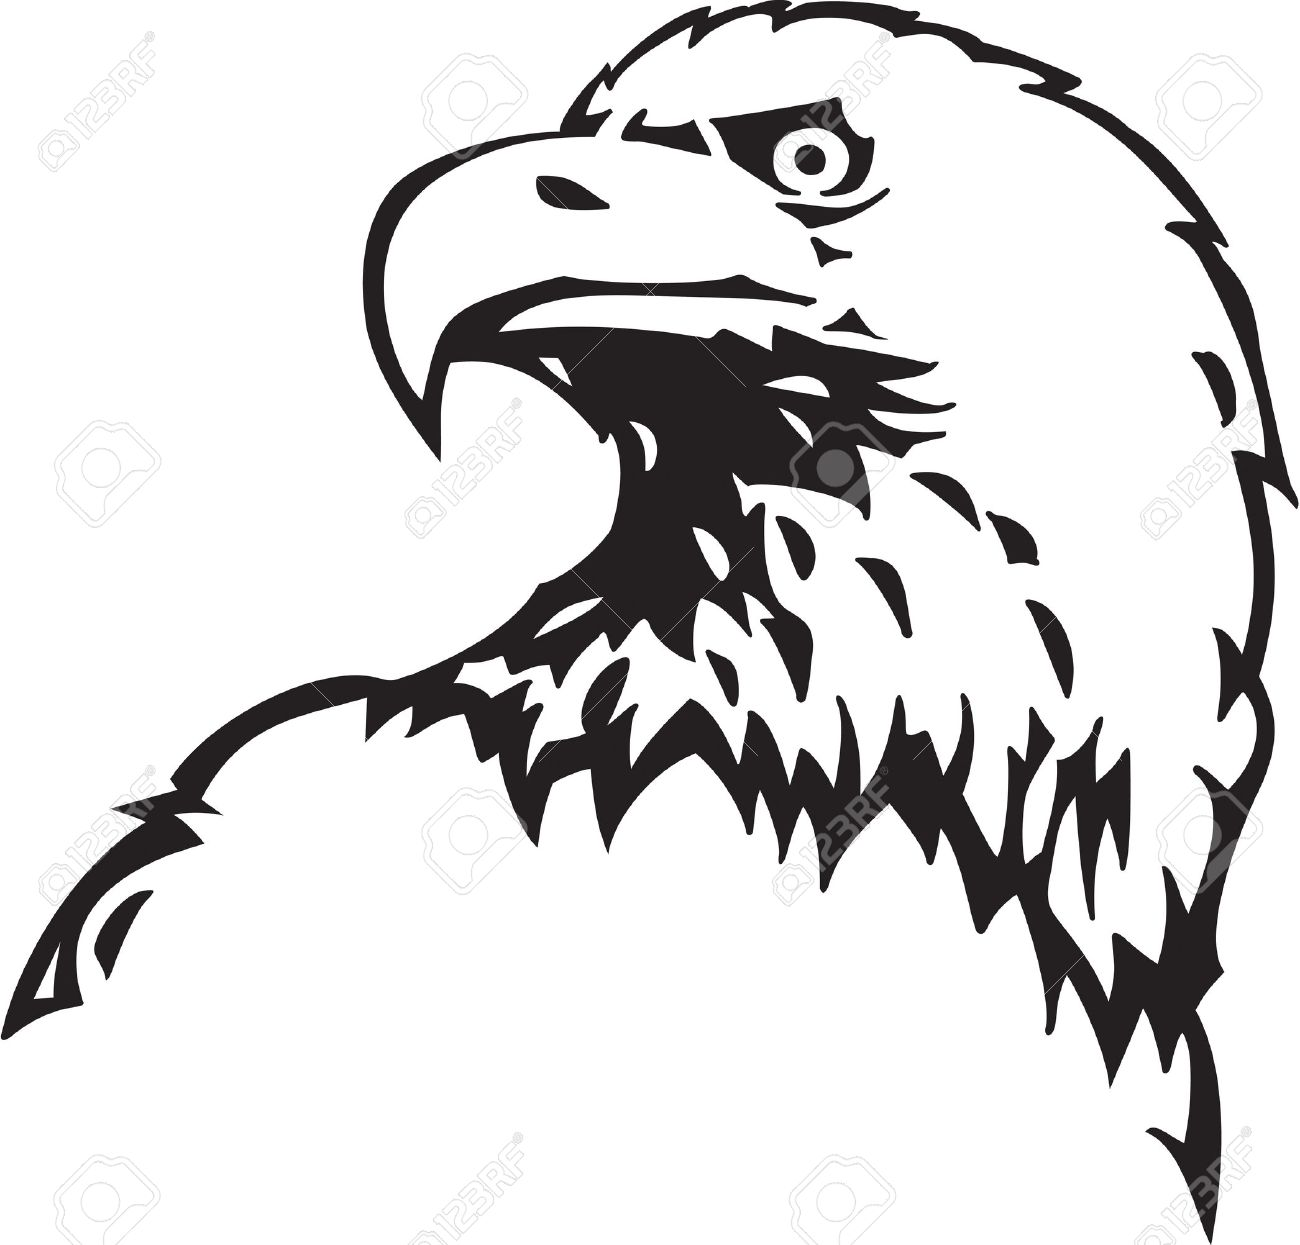 26,348 Eagle Stock Vector Illustration And Royalty Free Eagle Clipart.